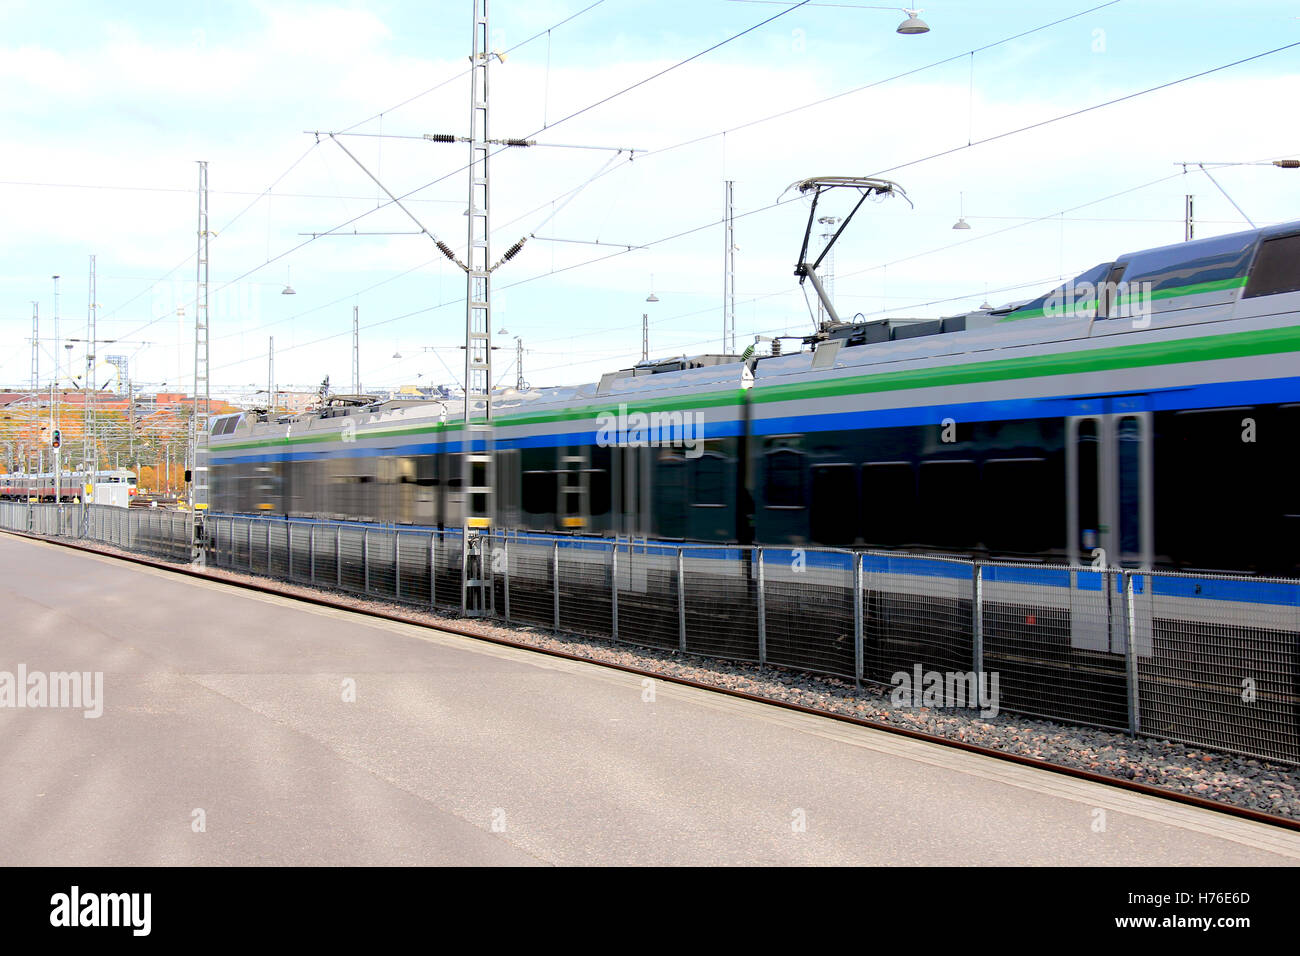 Modern commuter train departs station on a beautiful day. Motion blur. - Stock Image